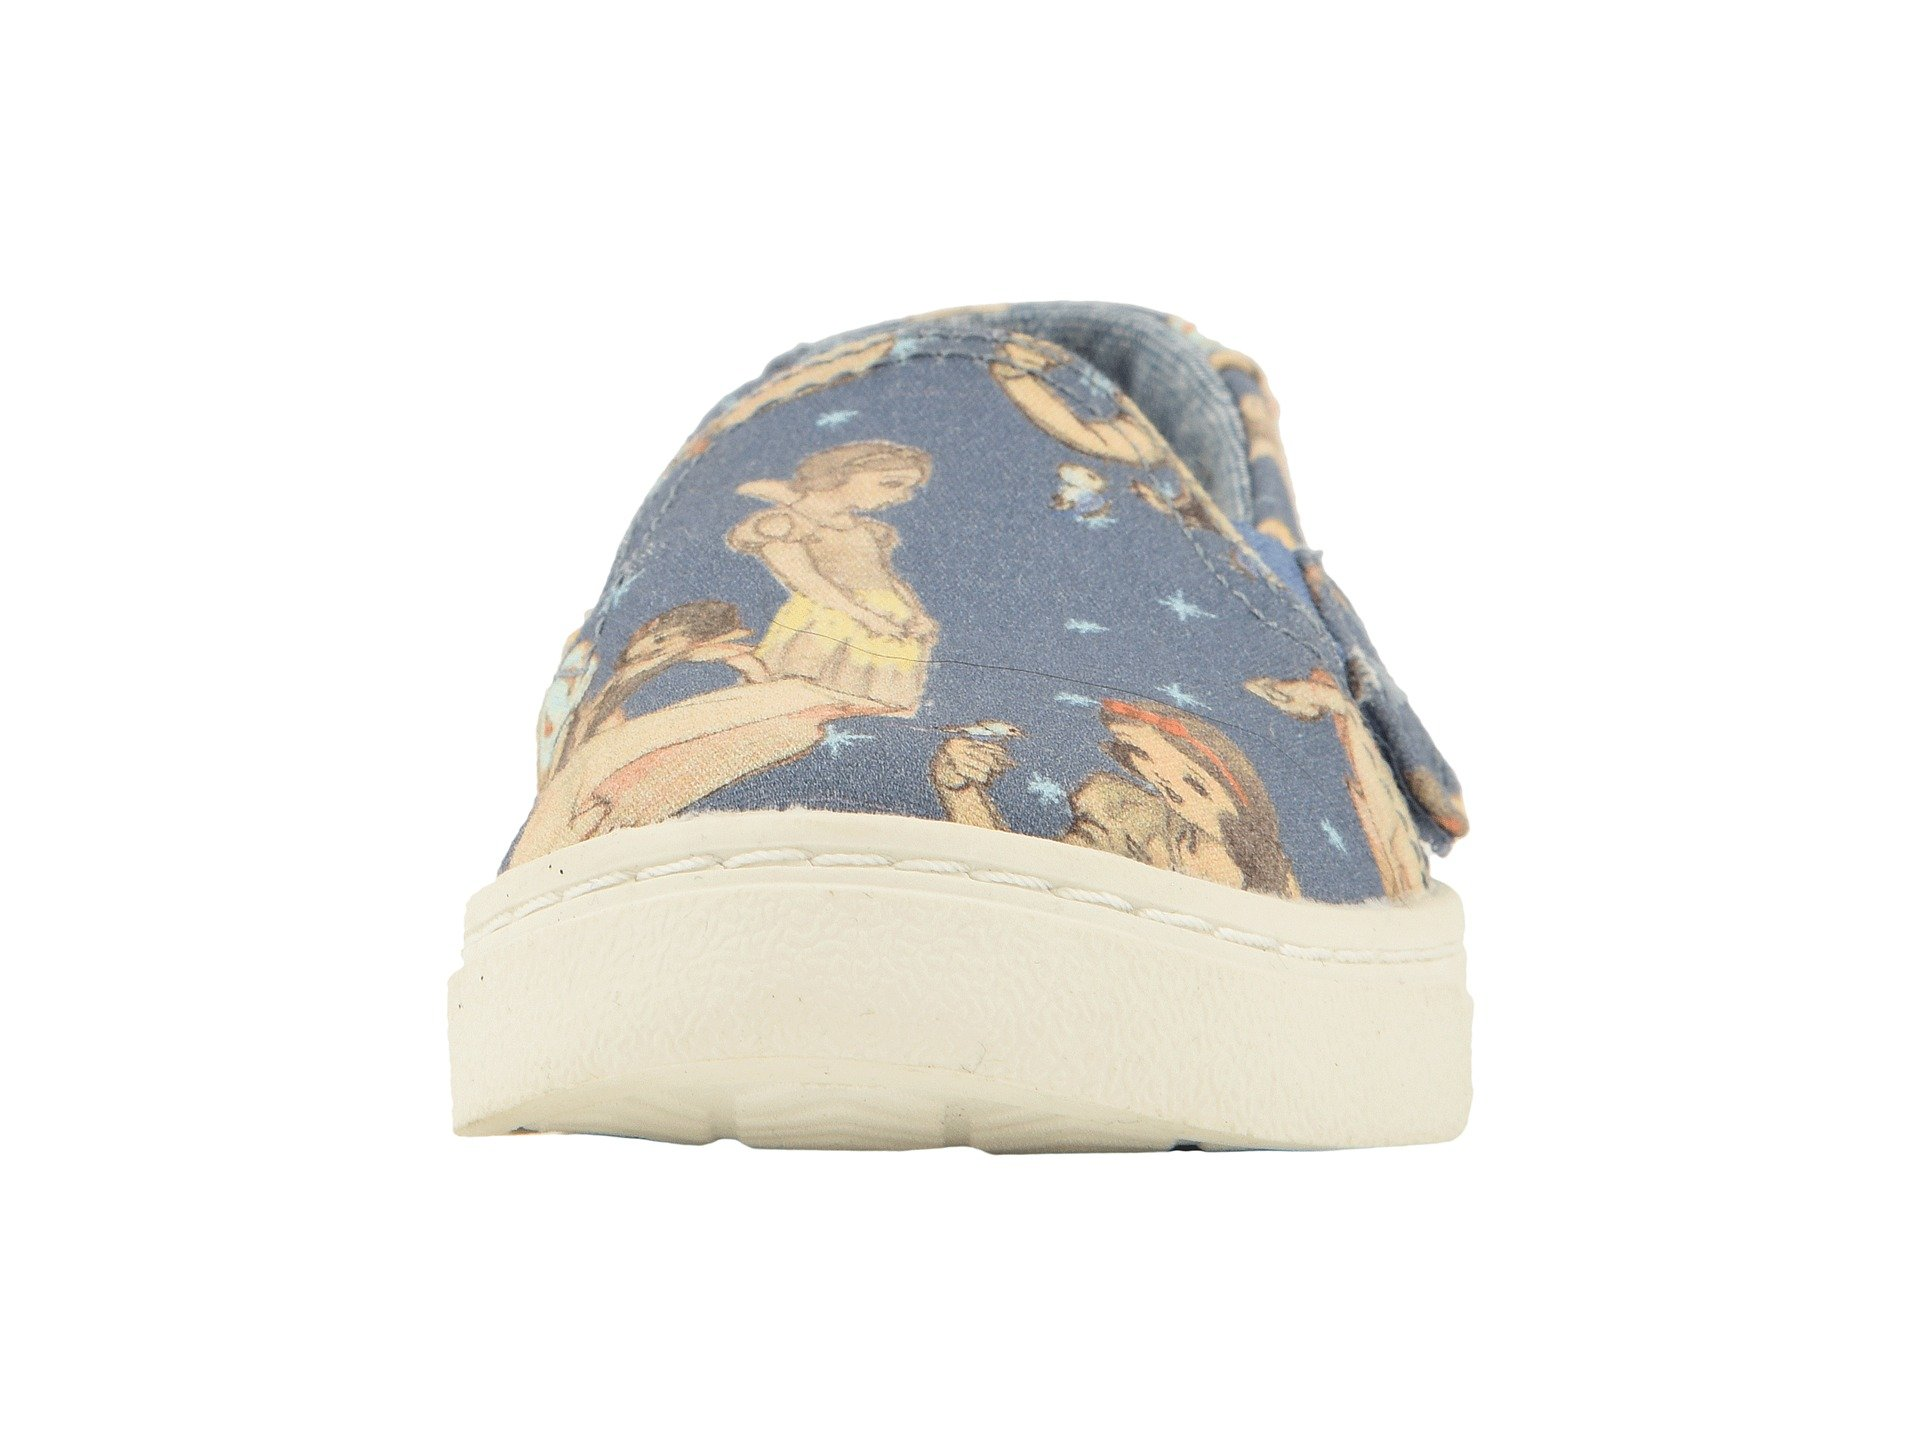 TOMS Girl's, Luca Slip on Shoes Blue 4 M by TOMS Kids (Image #5)